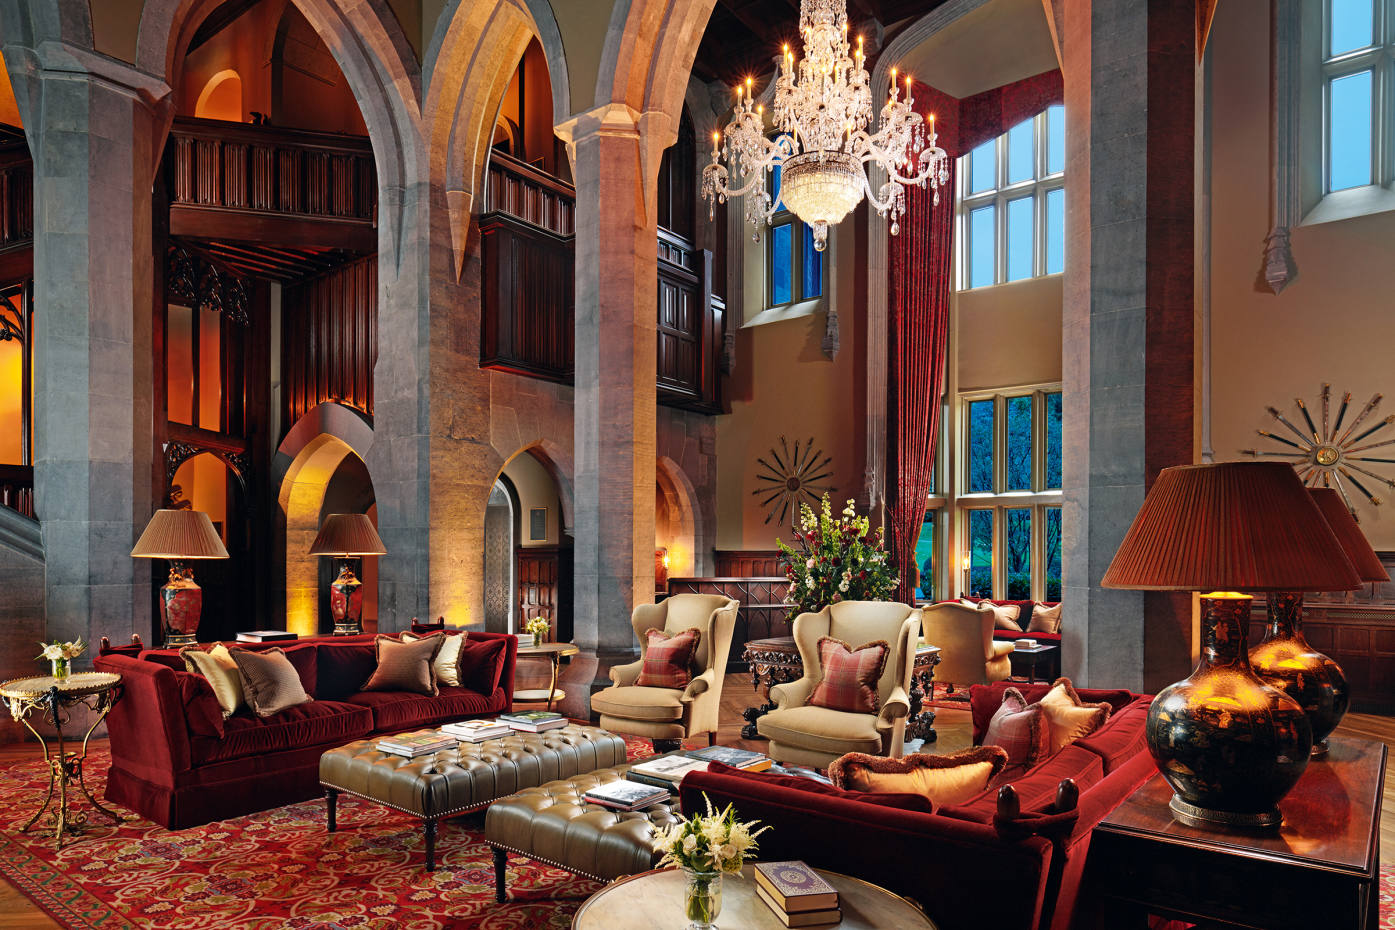 The Great Hall at Adare Manor in County Limerick, which abounds with reproduction furniture